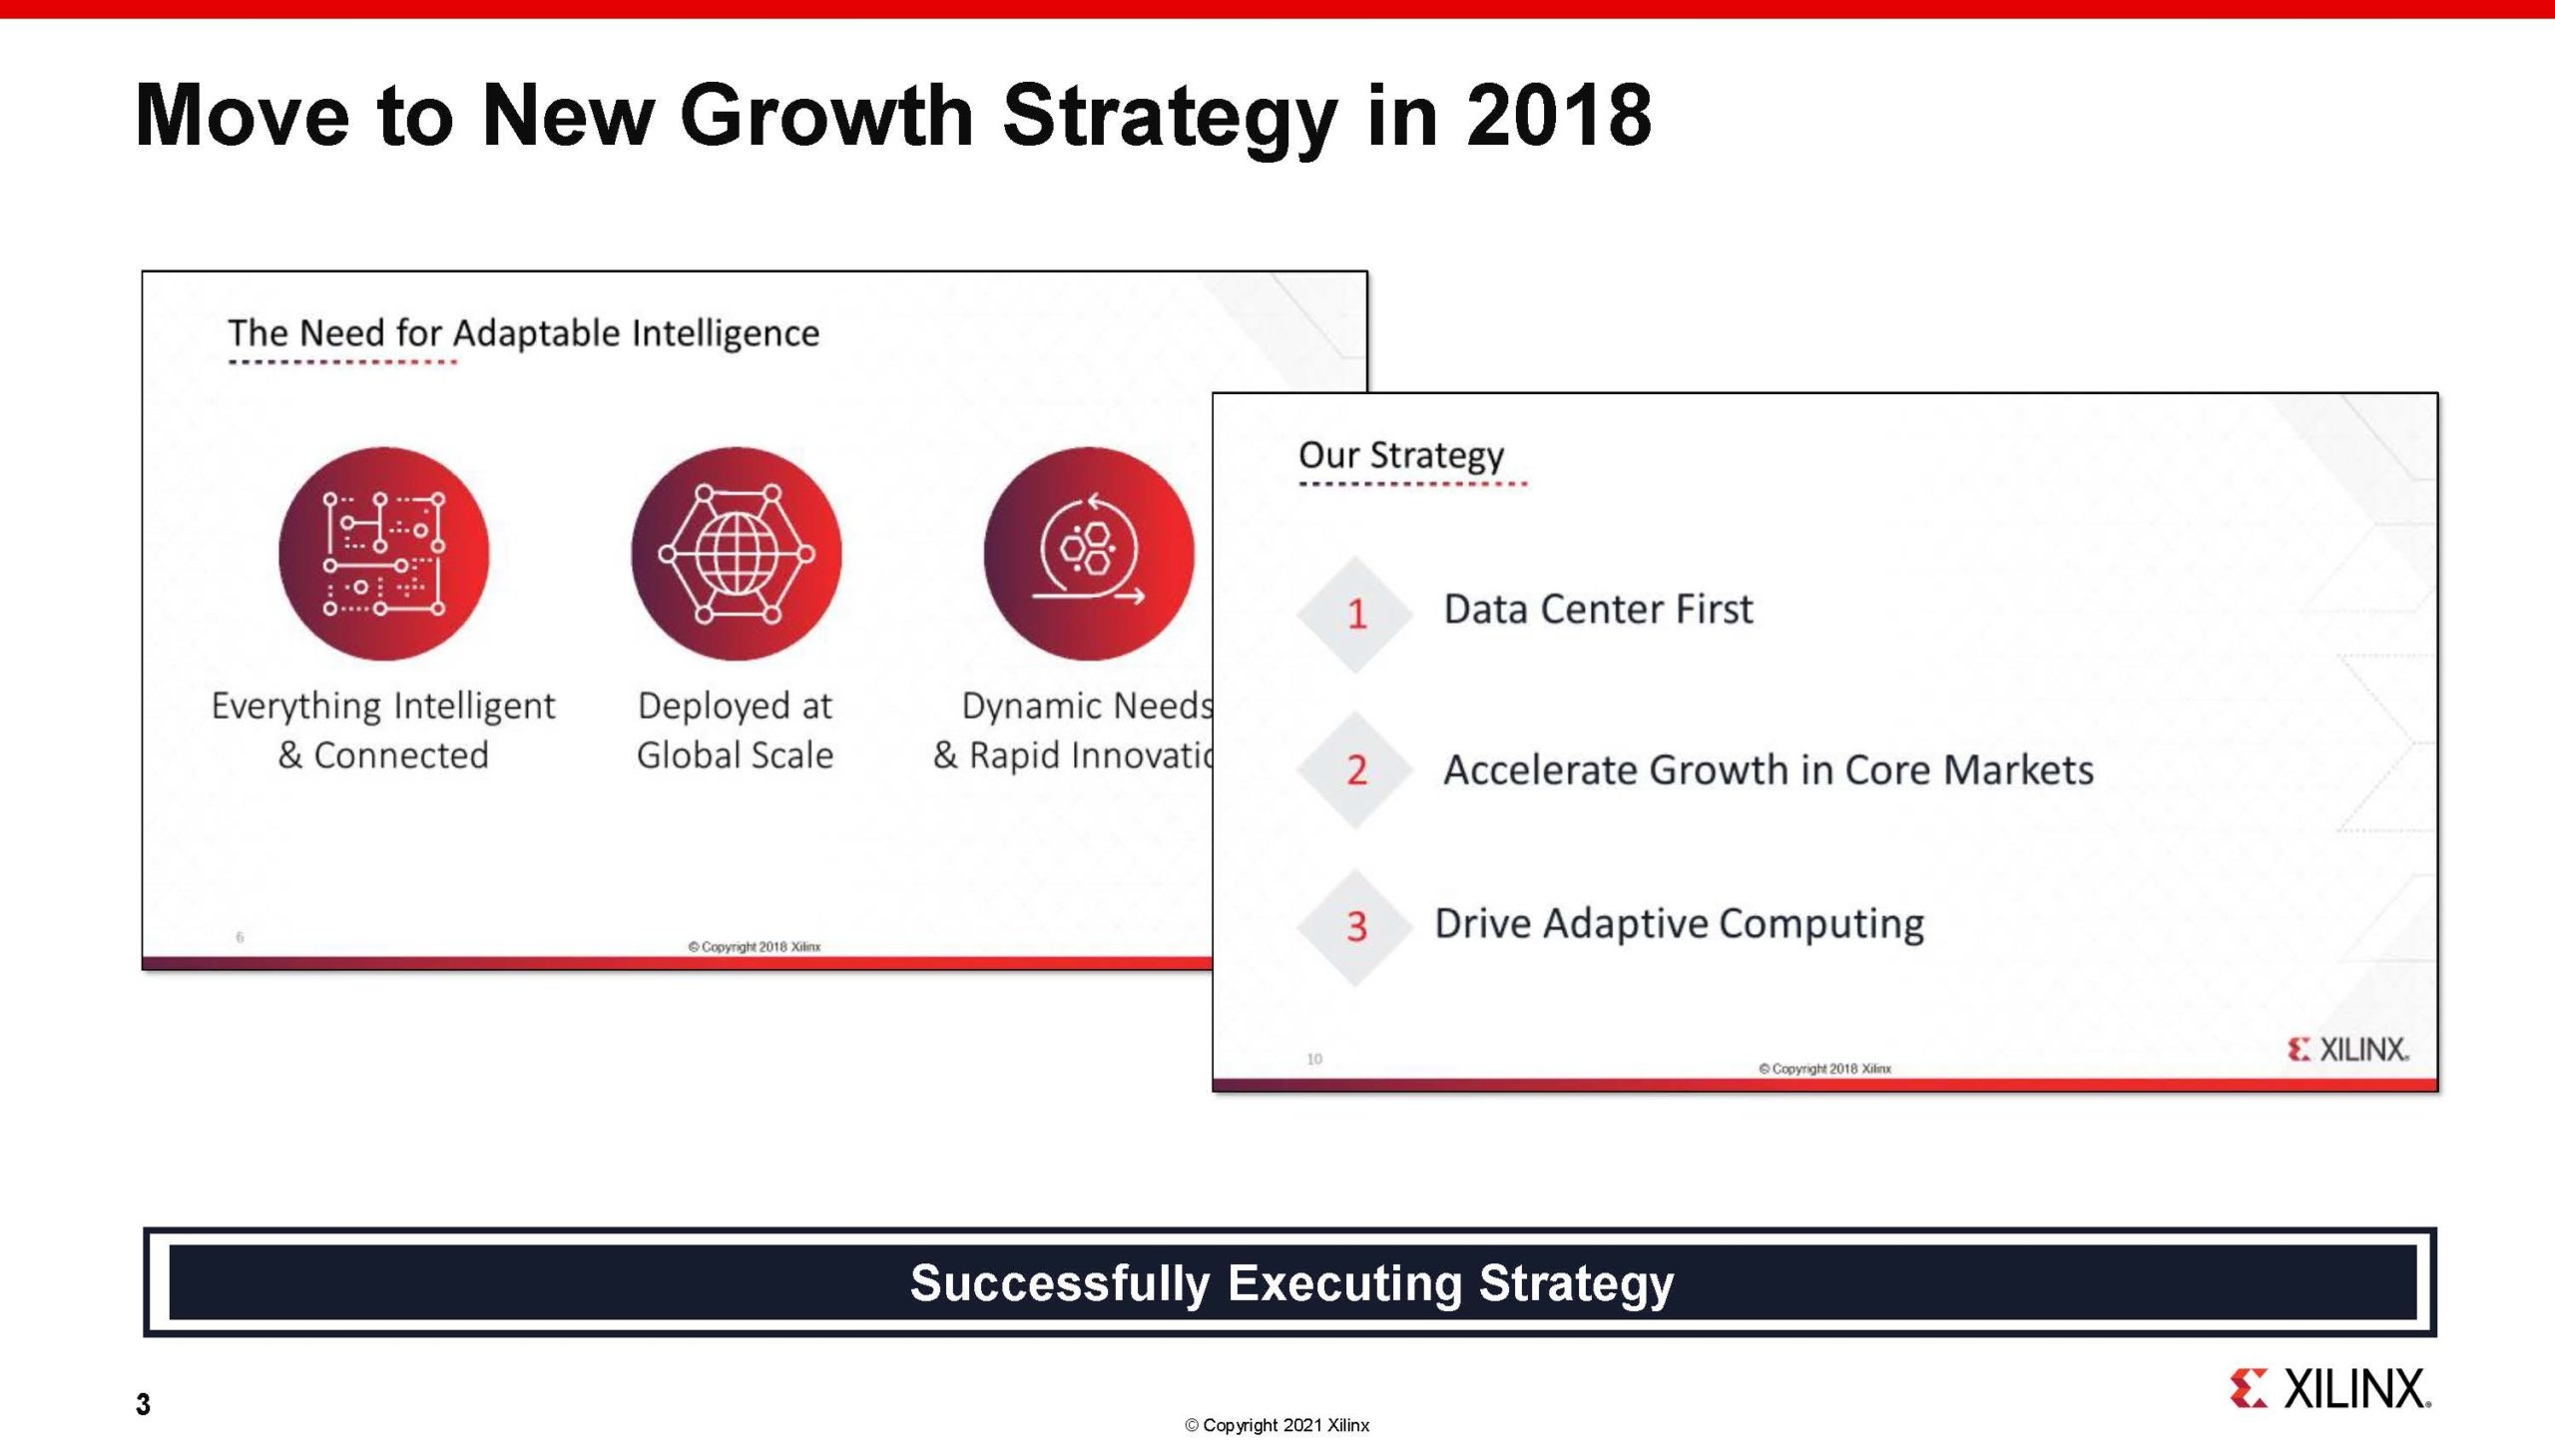 Xilinx Victor Peng 1H2021 Growth Strategy In 2018